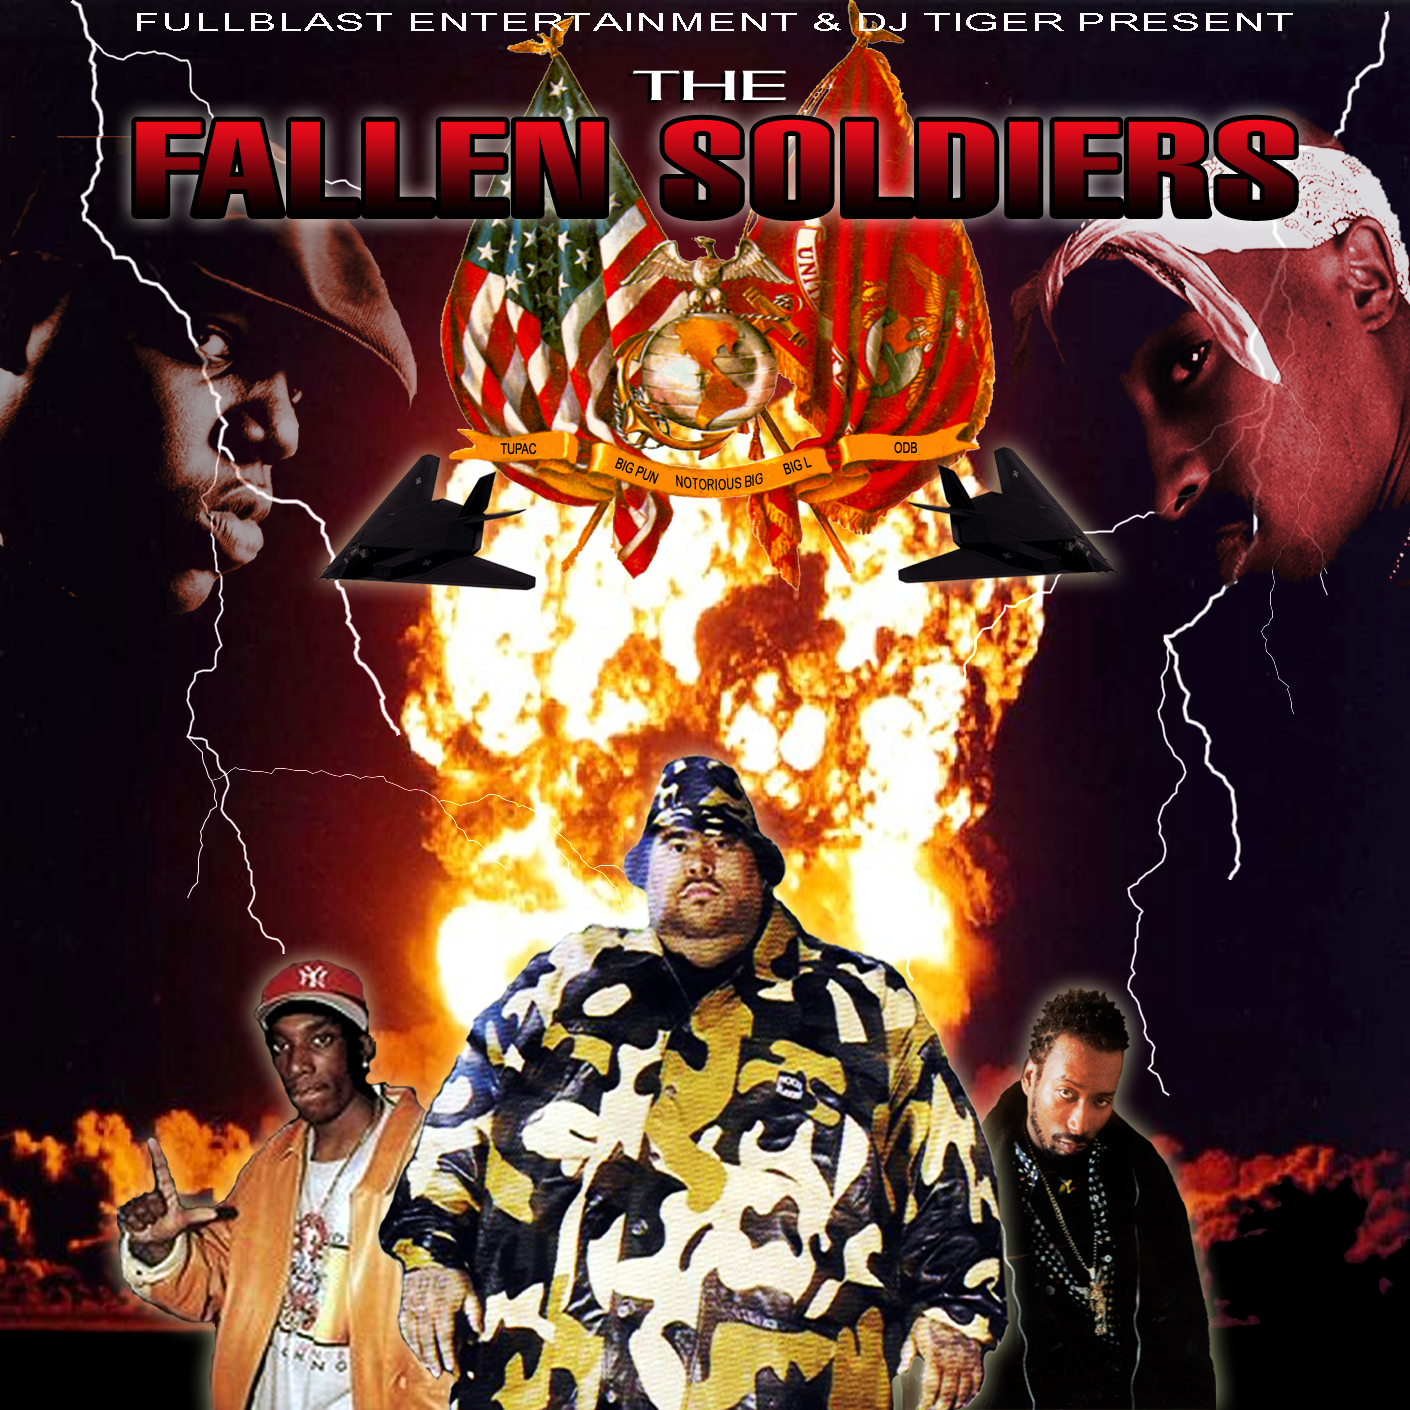 BIGGIE AND TUPAC - THE FALLEN SOLDIERS VOL 1